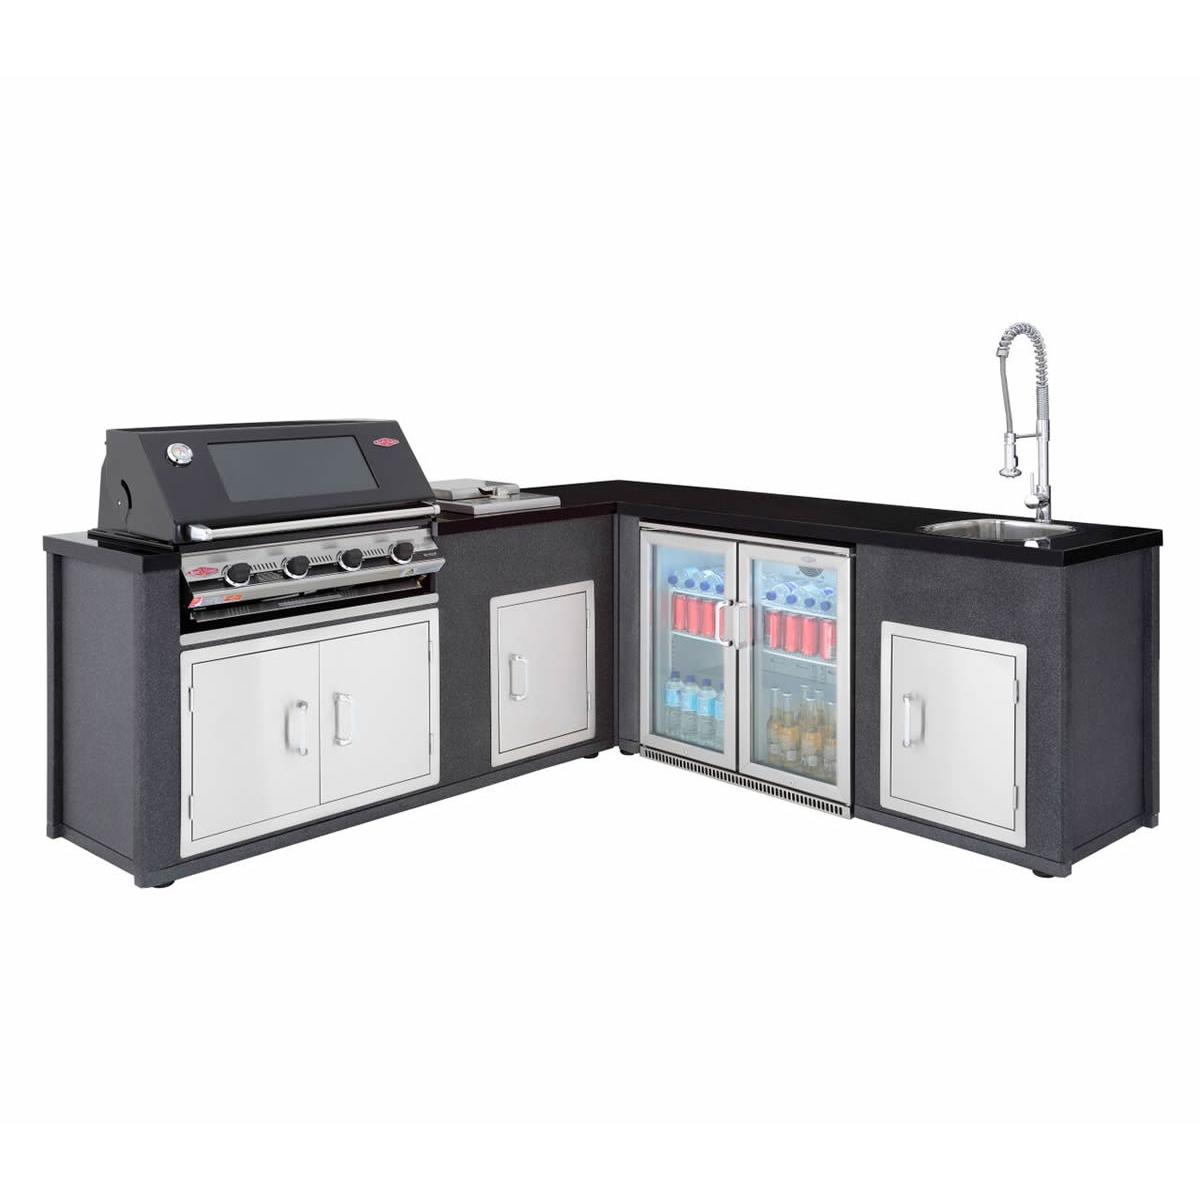 Beefeater Outdoor Kitchens Uk